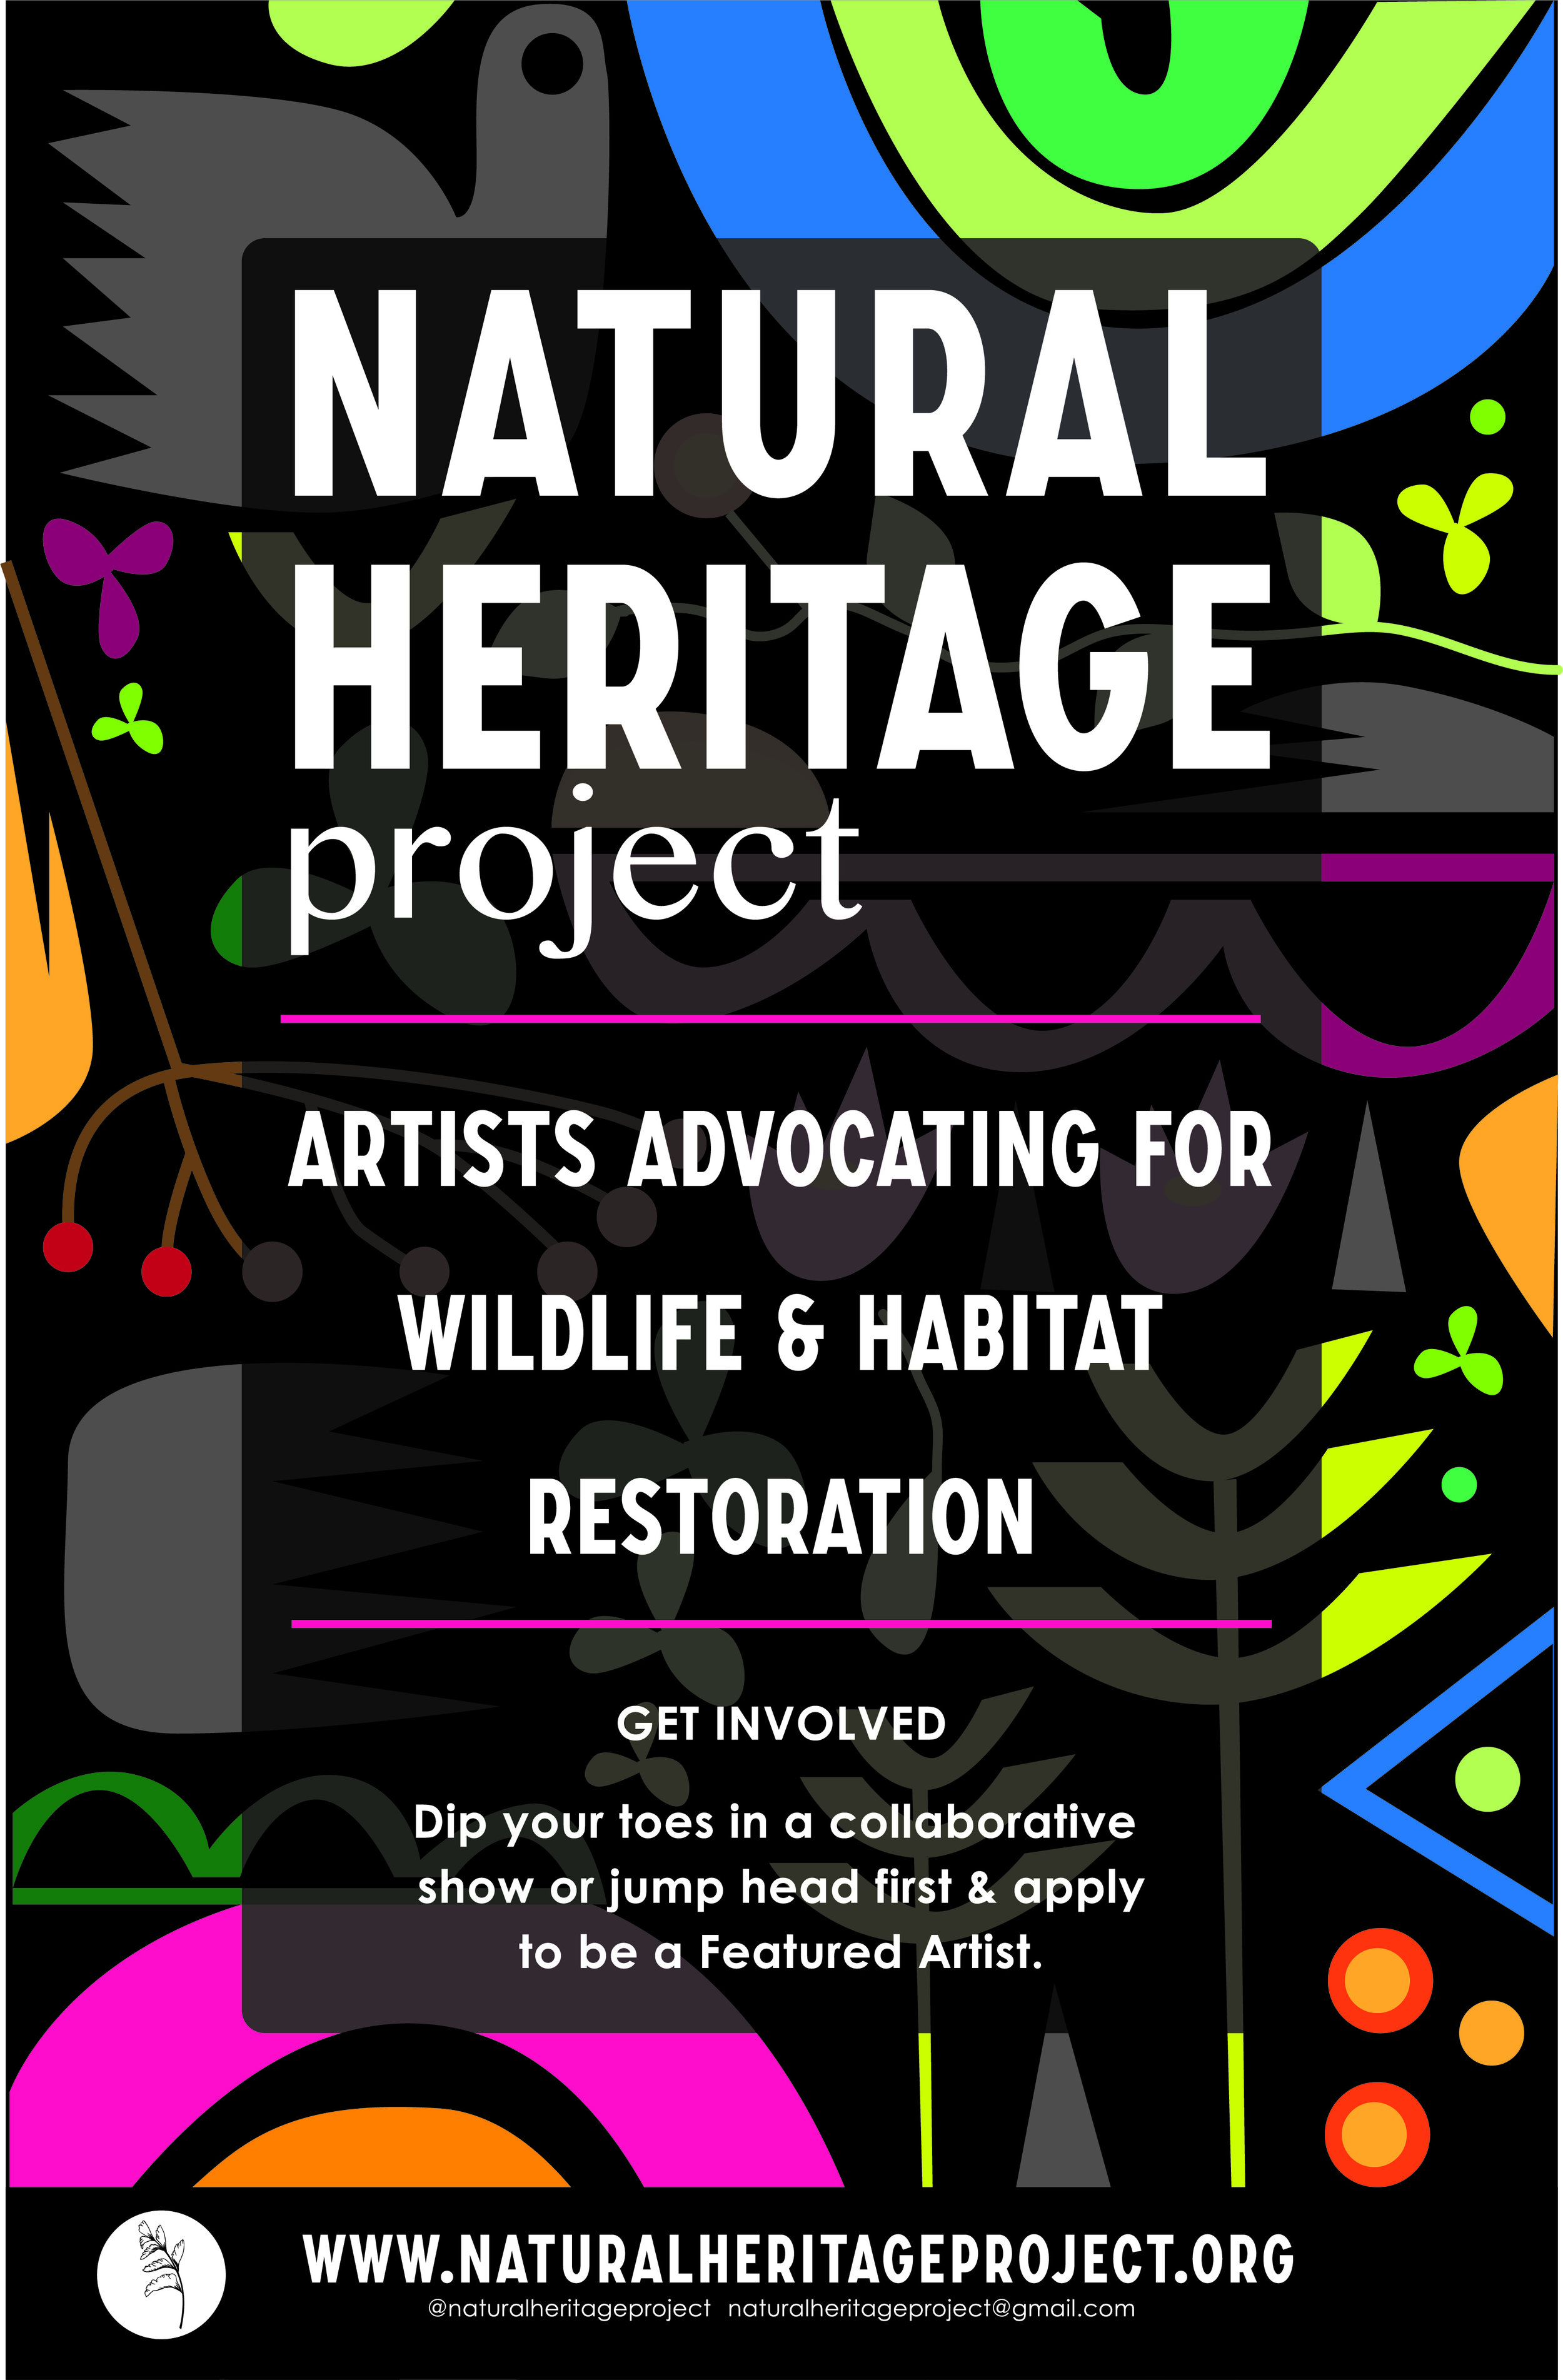 NATURAL HERITAGE PROJECT - WEB MASTER | BRAND ASSETS | LOGO | DRAFT CONTENTThe Natural Heritage Project works with artists of all mediums and encourages them to become educators and translators of environmental science and ecological data.